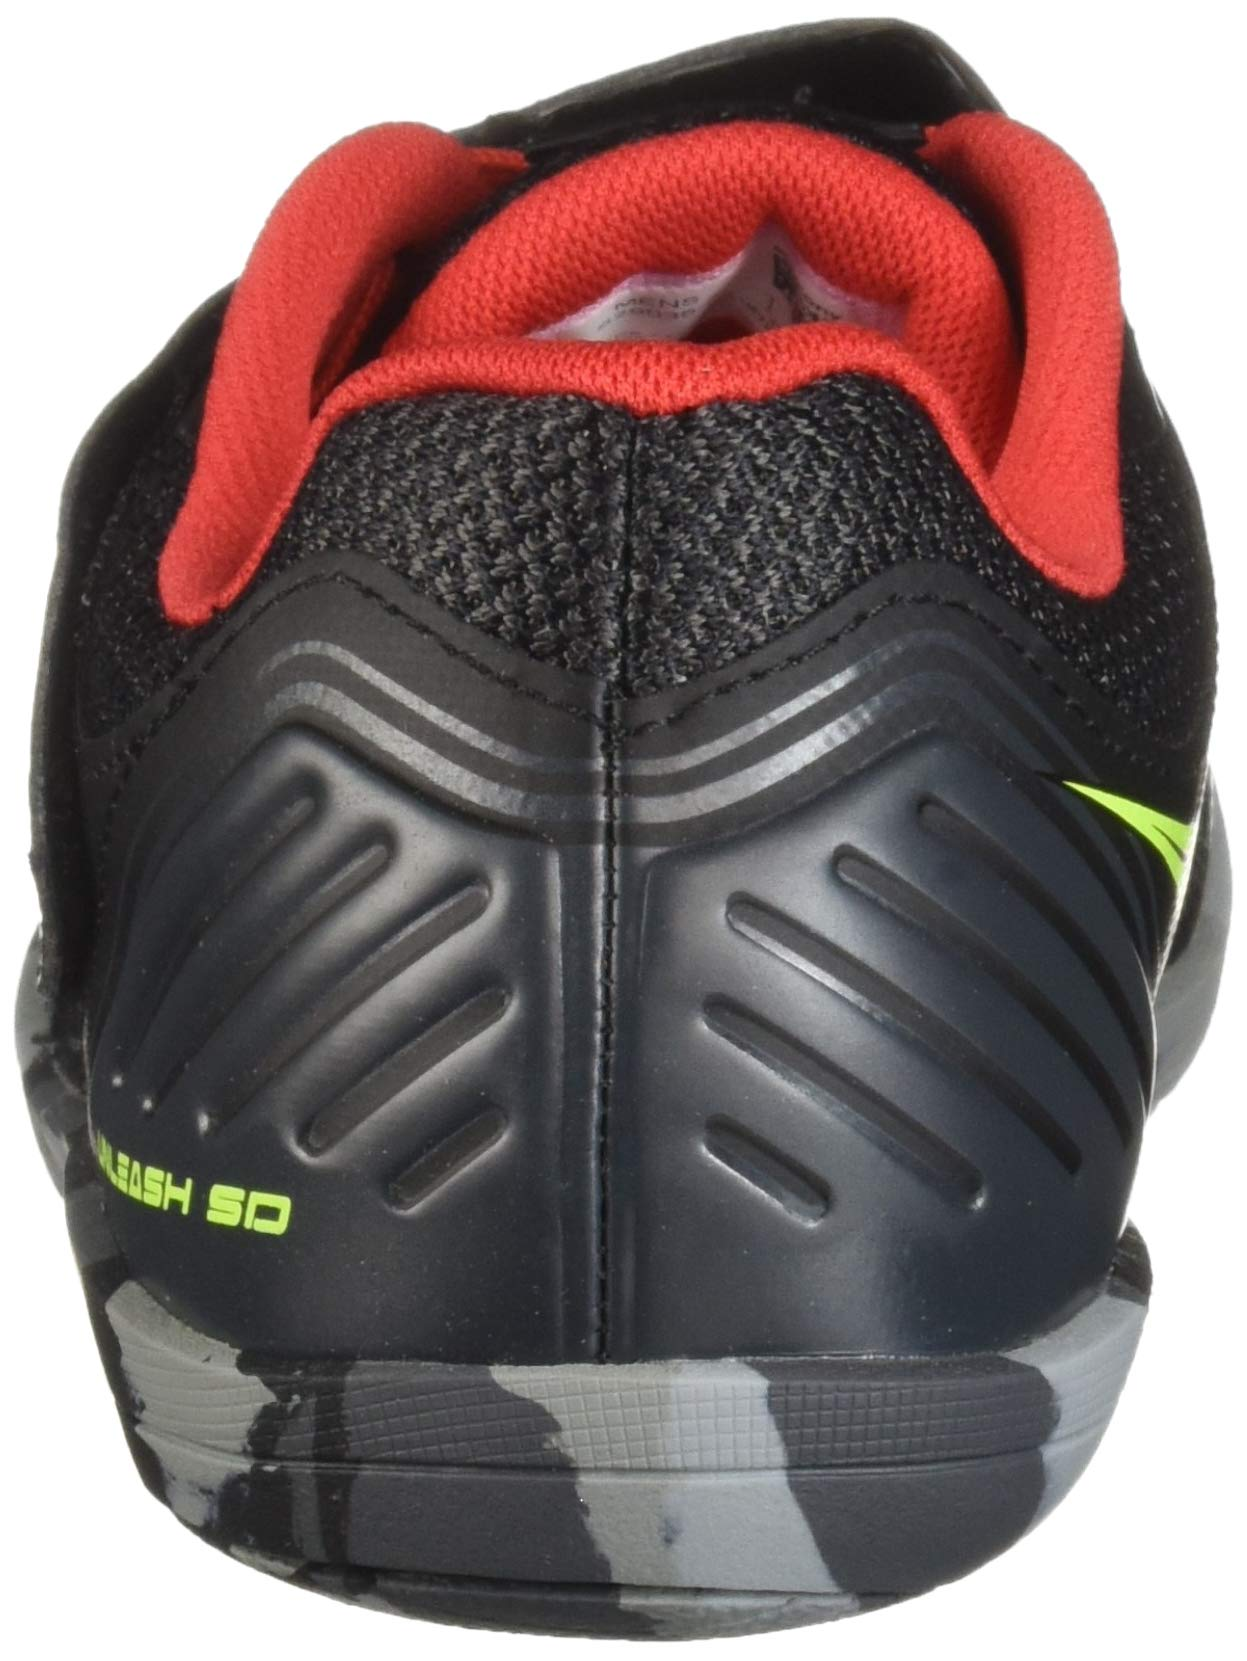 Saucony Men's Unleash SD2 Track and Field Shoe Black/red 8.5 by Saucony (Image #2)